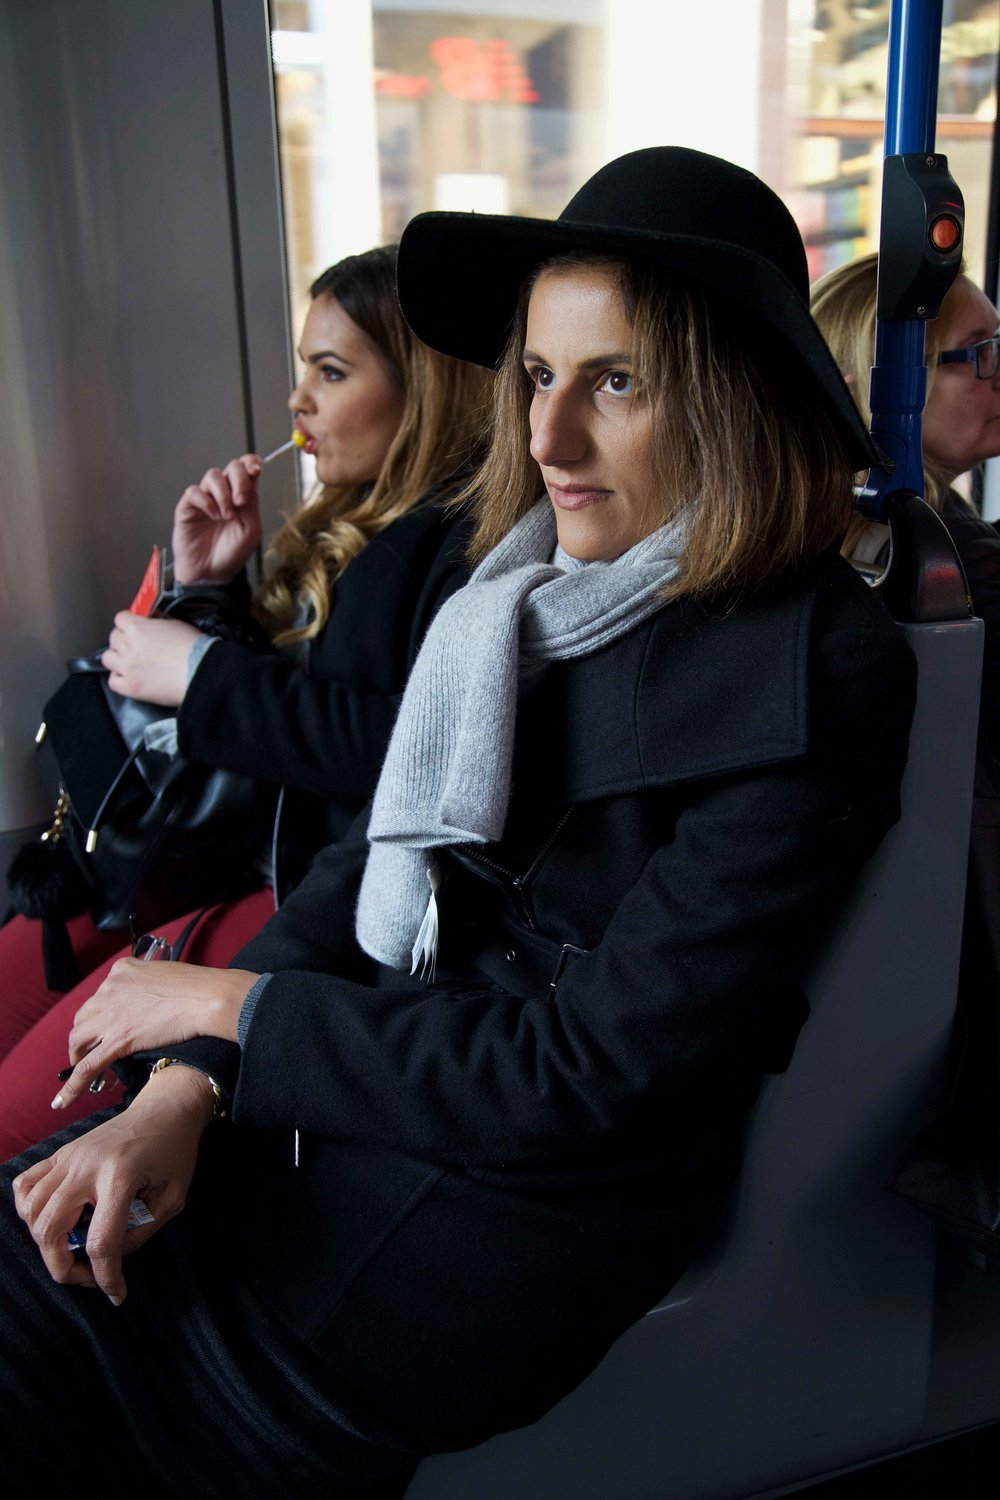 Tram ride, Amsterdam. Photo: Fabio Ricci. Image©thingstodot.com